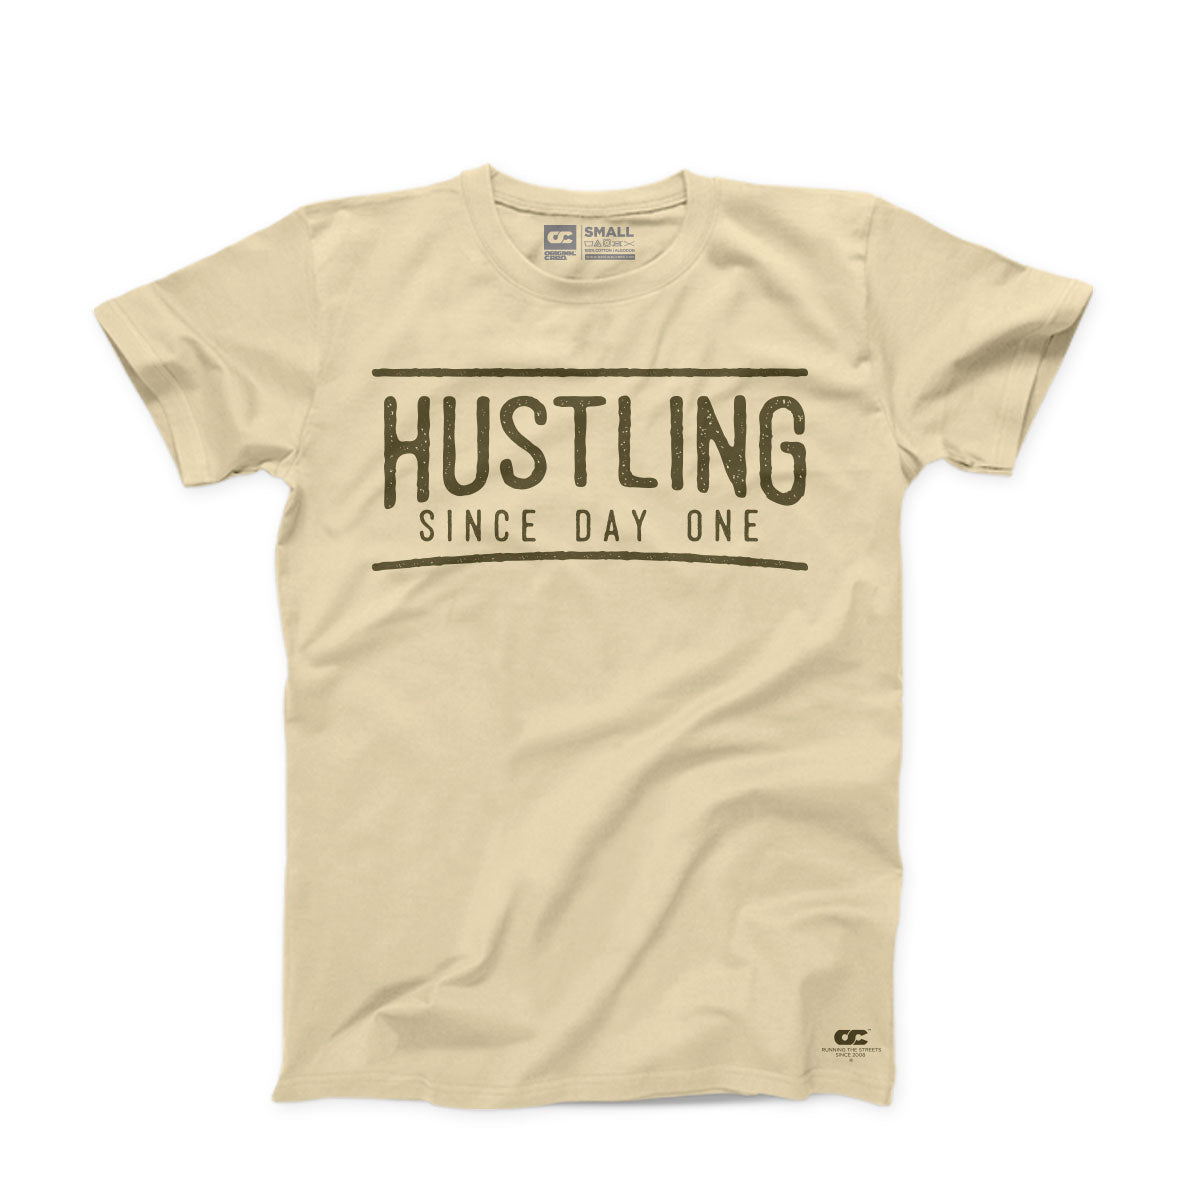 HUSTLING SINCE DAY ONE T-SHIRT